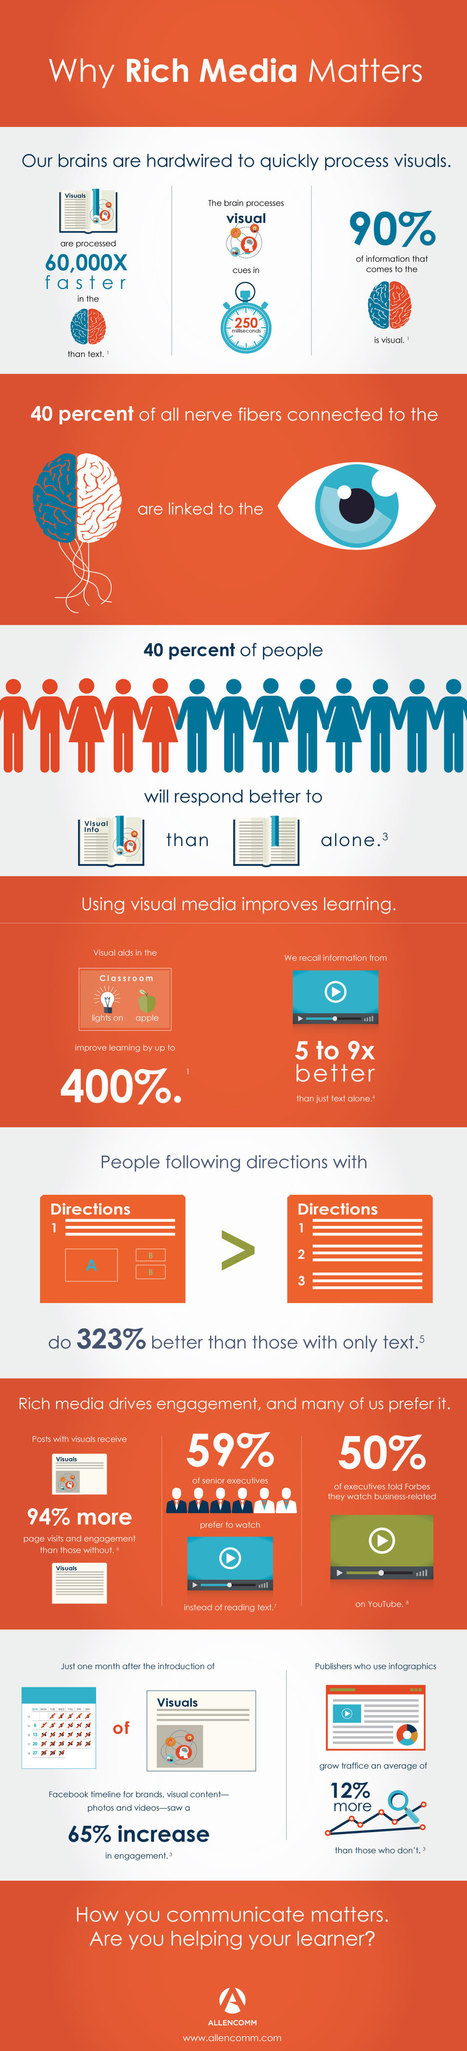 Boosting Learner Engagement with Rich Media Infographic | Infographic | Technology in Art And Education | Scoop.it